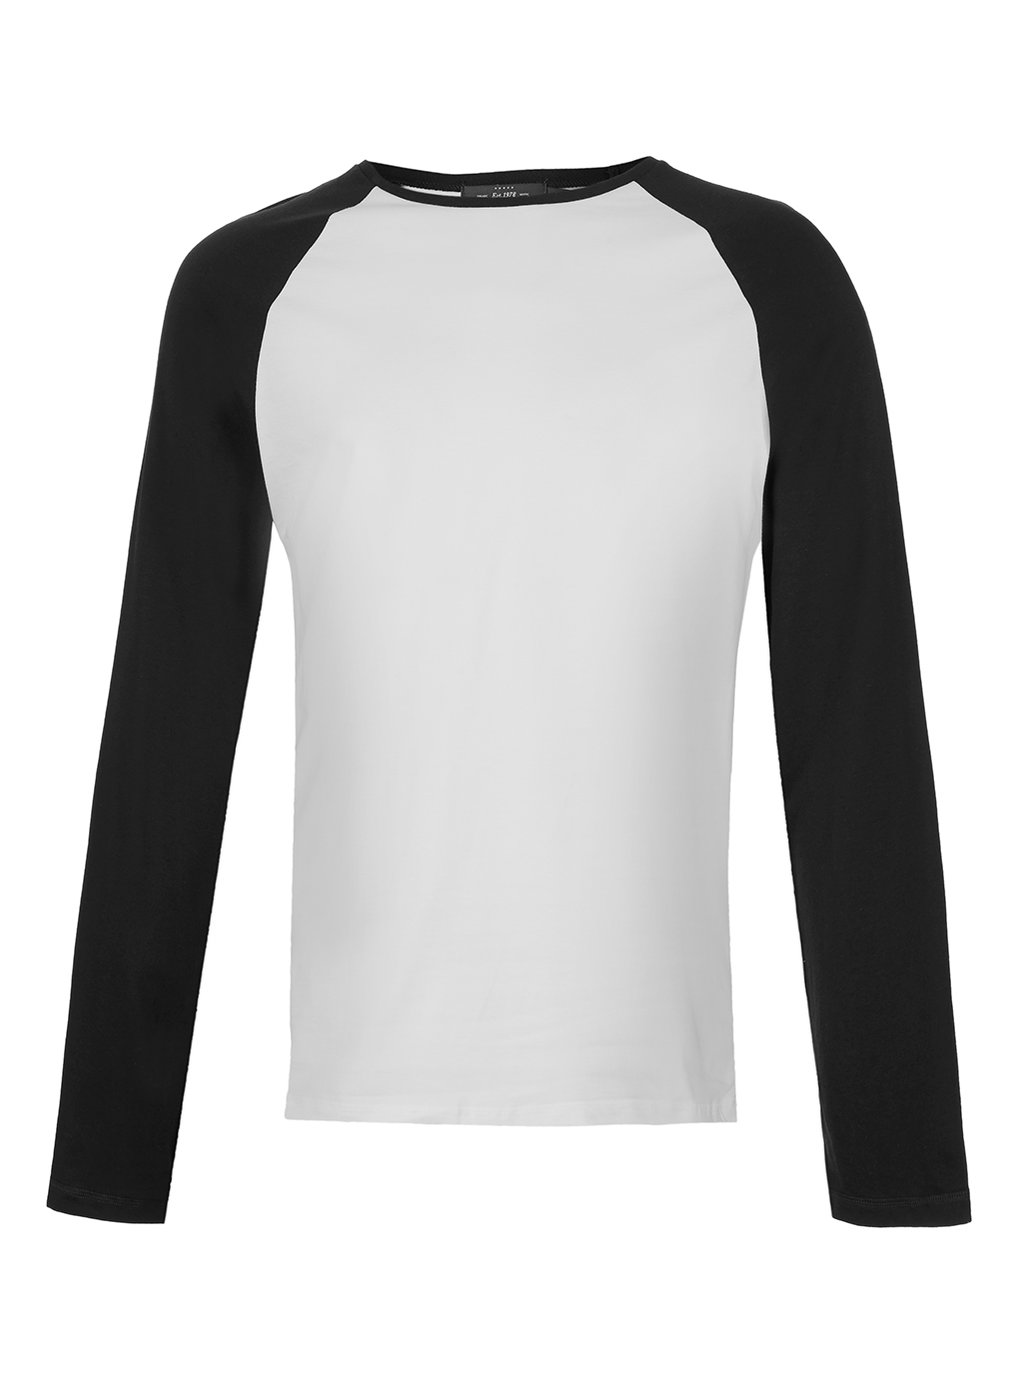 Black White Long Sleeve Shirt | Is Shirt